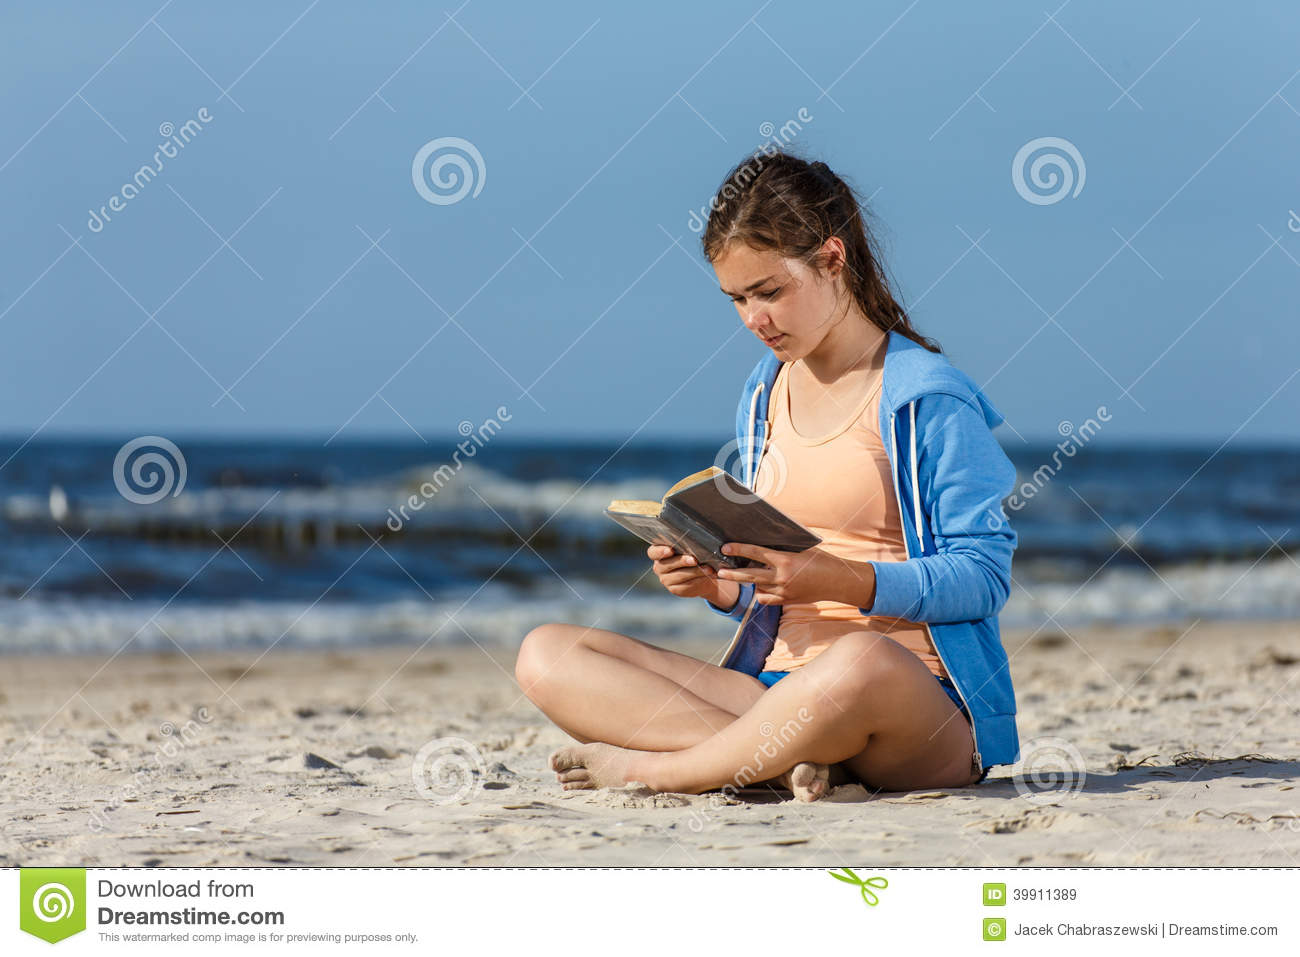 Nude beach girl with man reading book for that